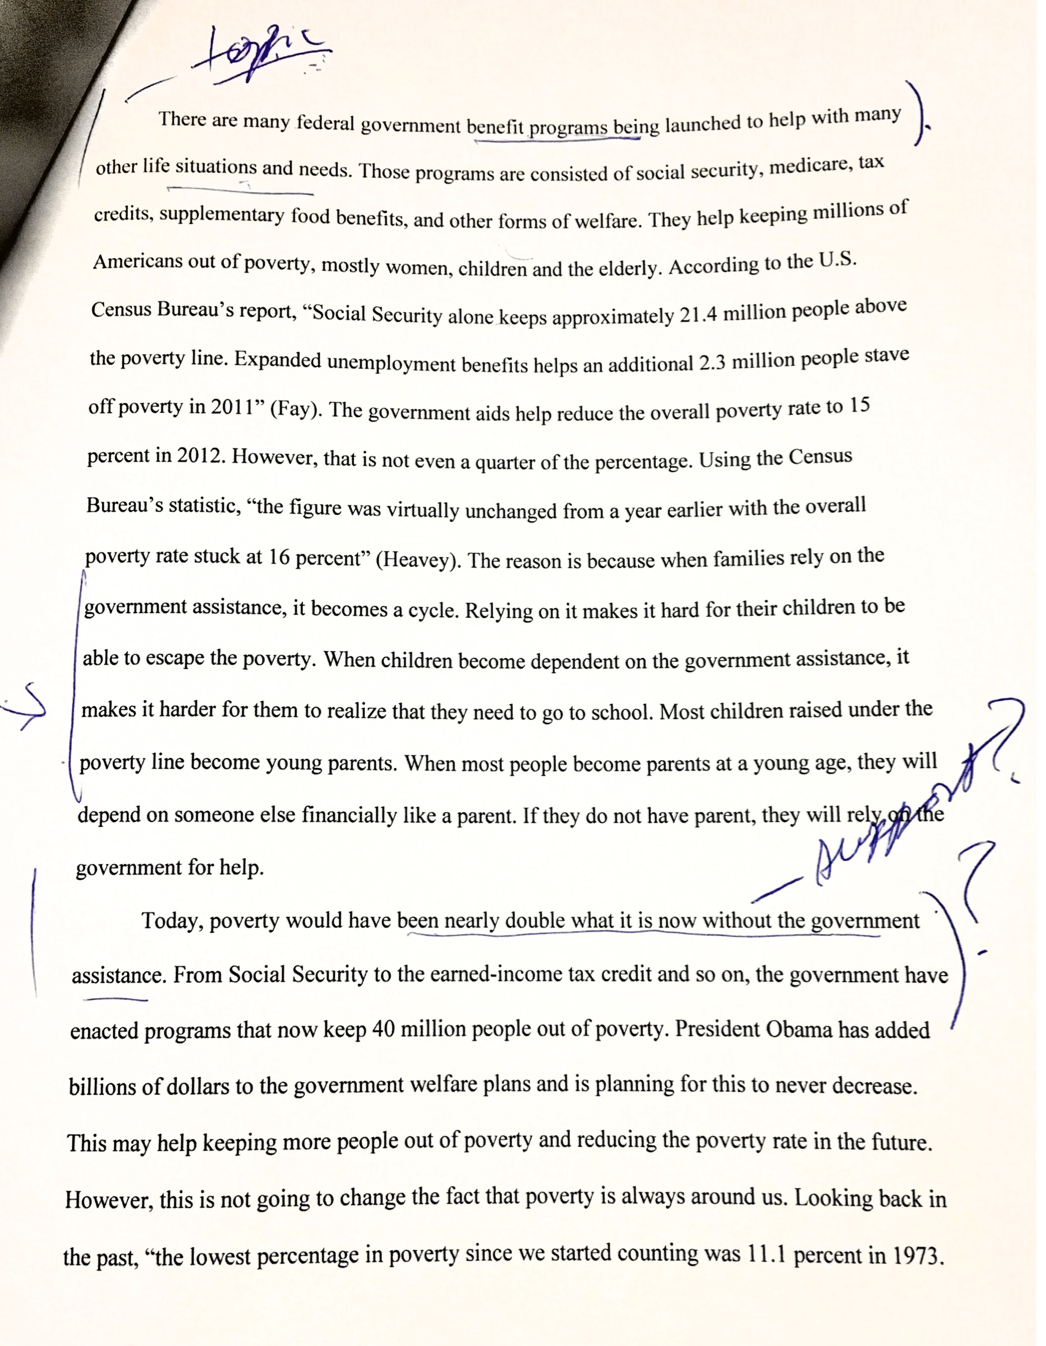 High School Narrative Essay Help With My Government Essay  Opinion Of Professionals High School Years Essay also How To Write A High School Application Essay Help With My Government Essay  Opinion Of Professionals  Games  Illustration Essay Example Papers